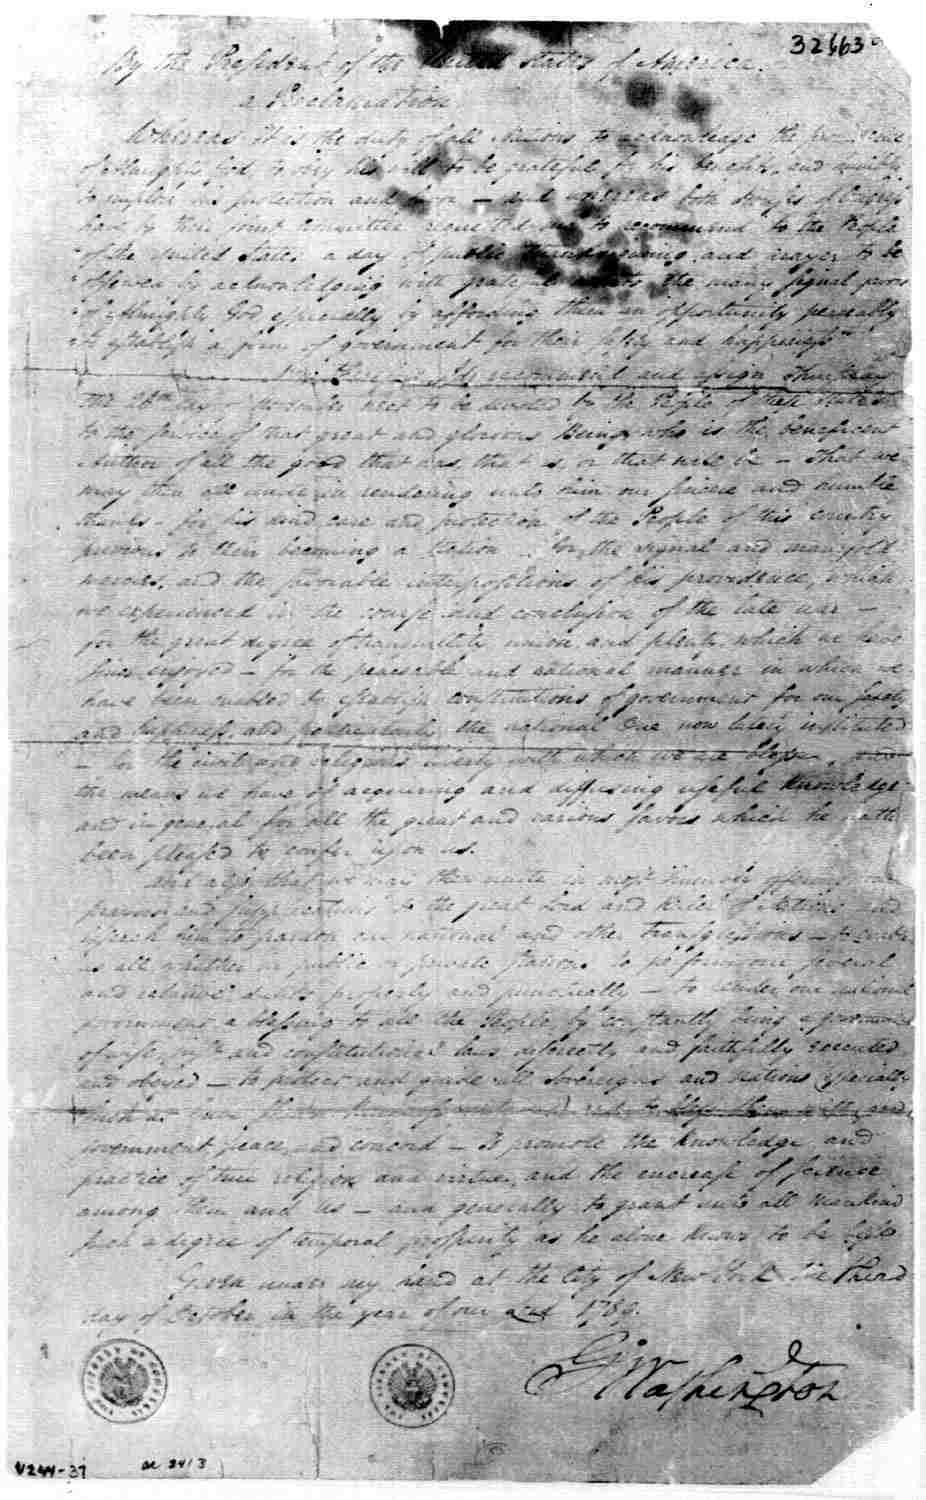 Original copy of George Washington's Thanksgiving Proclamation